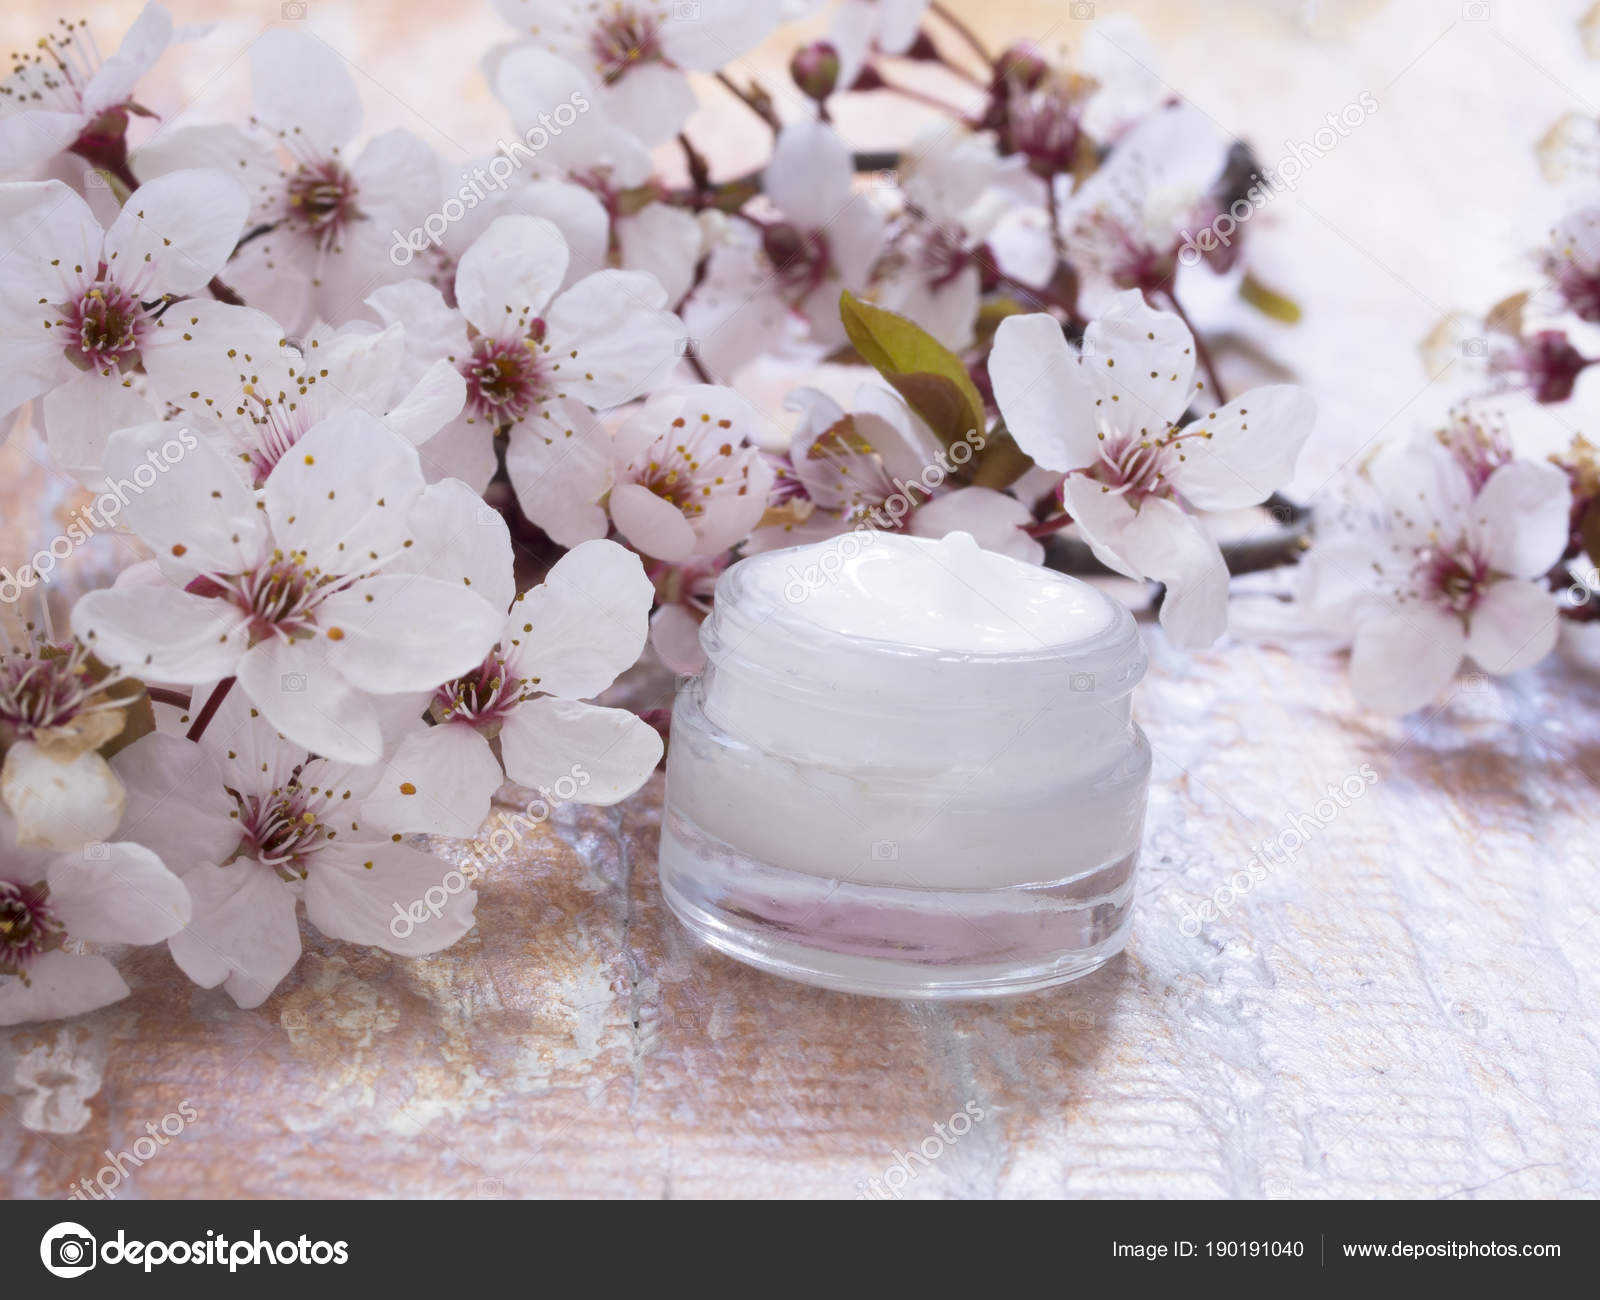 Natural cosmetics fresh spring flowers stock photo vesnac 190191040 natural cosmetics fresh spring flowers stock photo mightylinksfo